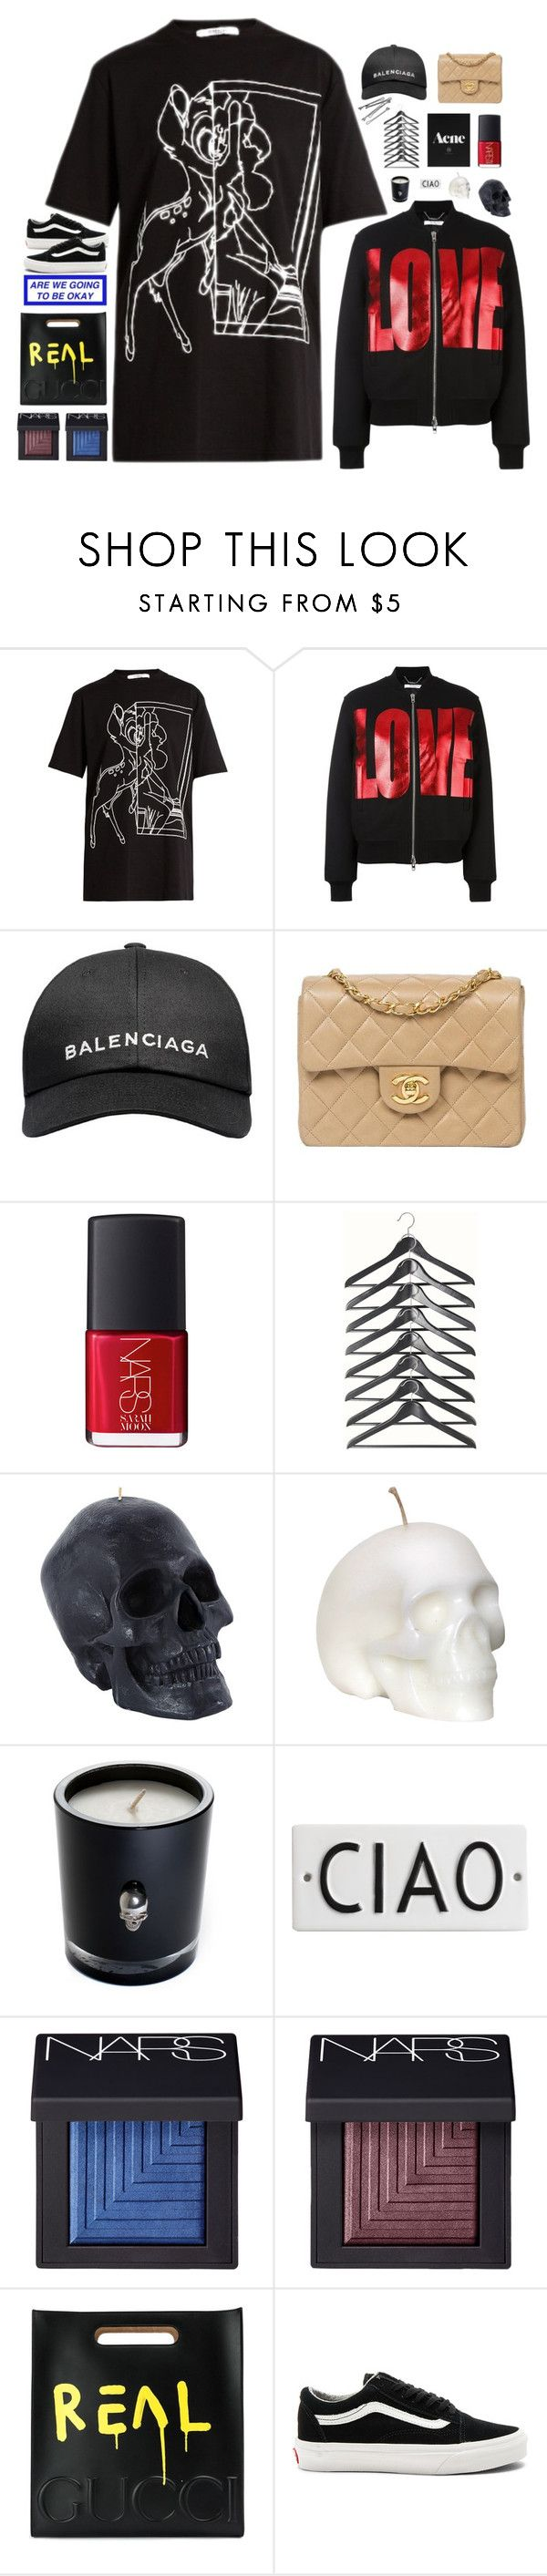 """bless up"" by lanadelnotyou ❤ liked on Polyvore featuring Givenchy, Balenciaga, Chanel, NARS Cosmetics, Lisa Carrier, Rosanna, BOBBY, Gucci, Vans and aneesastopsets"